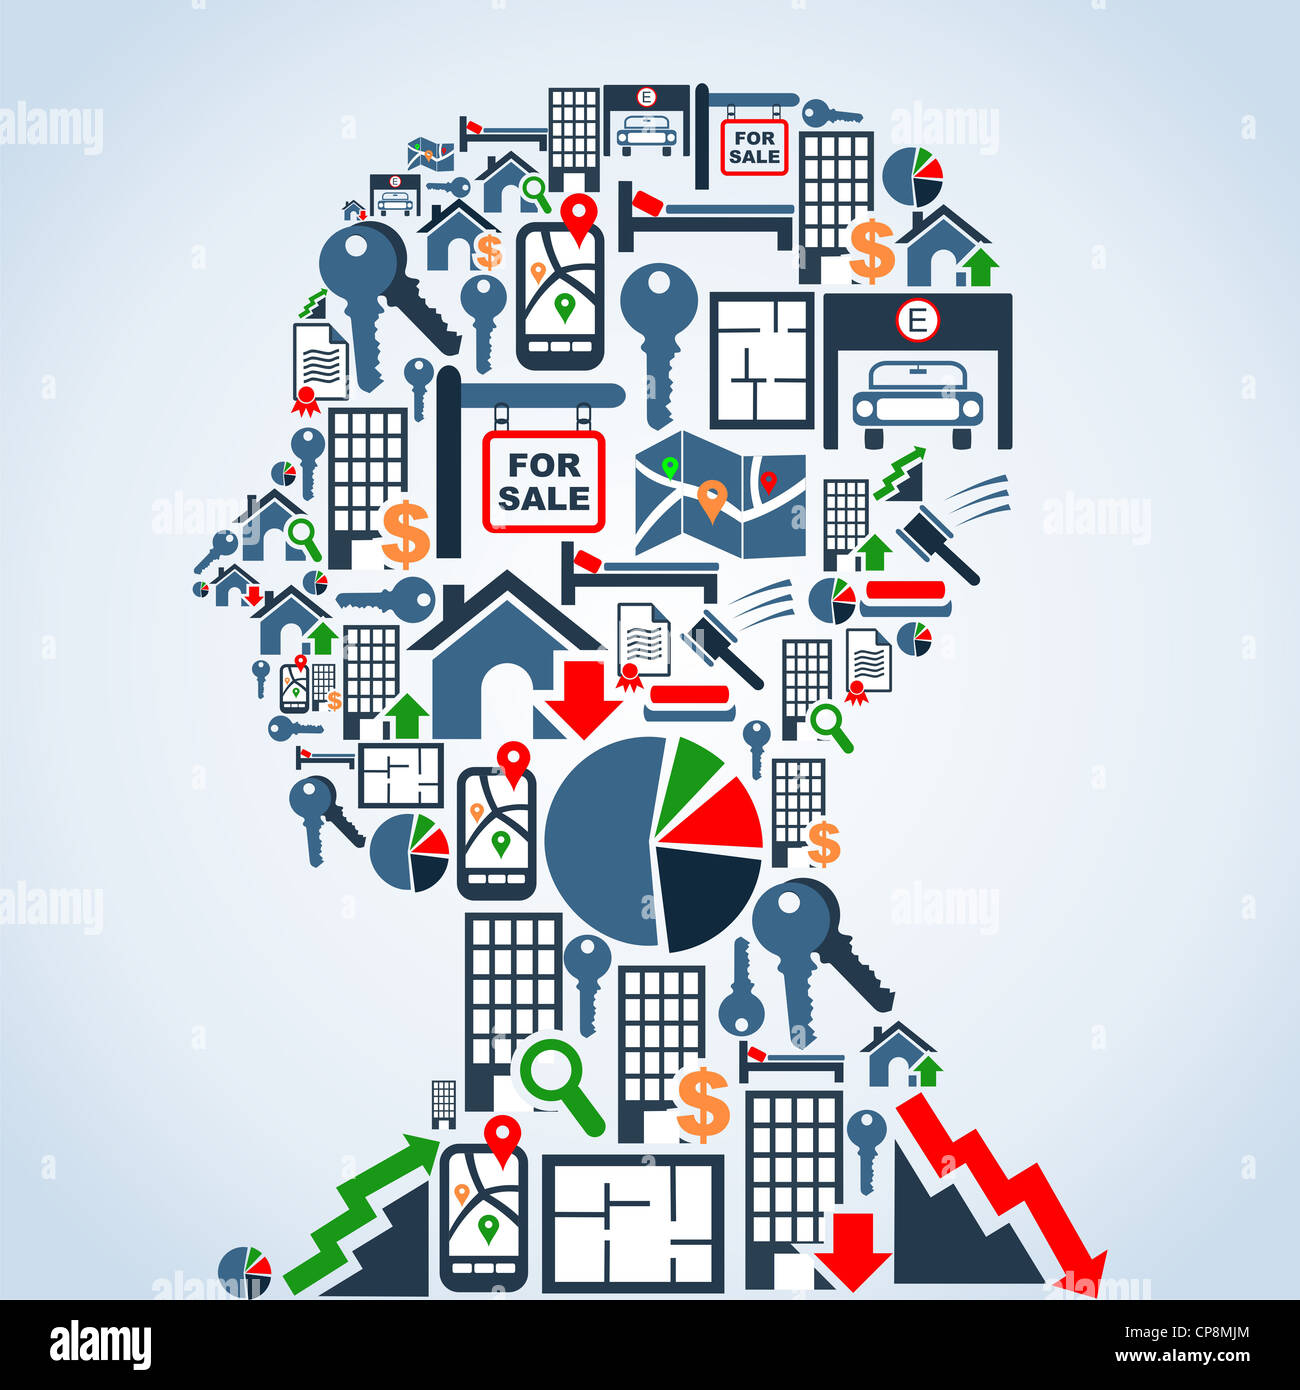 Real estate icon set in man head shape background illustration. Vector file layered for easy manipulation and custom - Stock Image